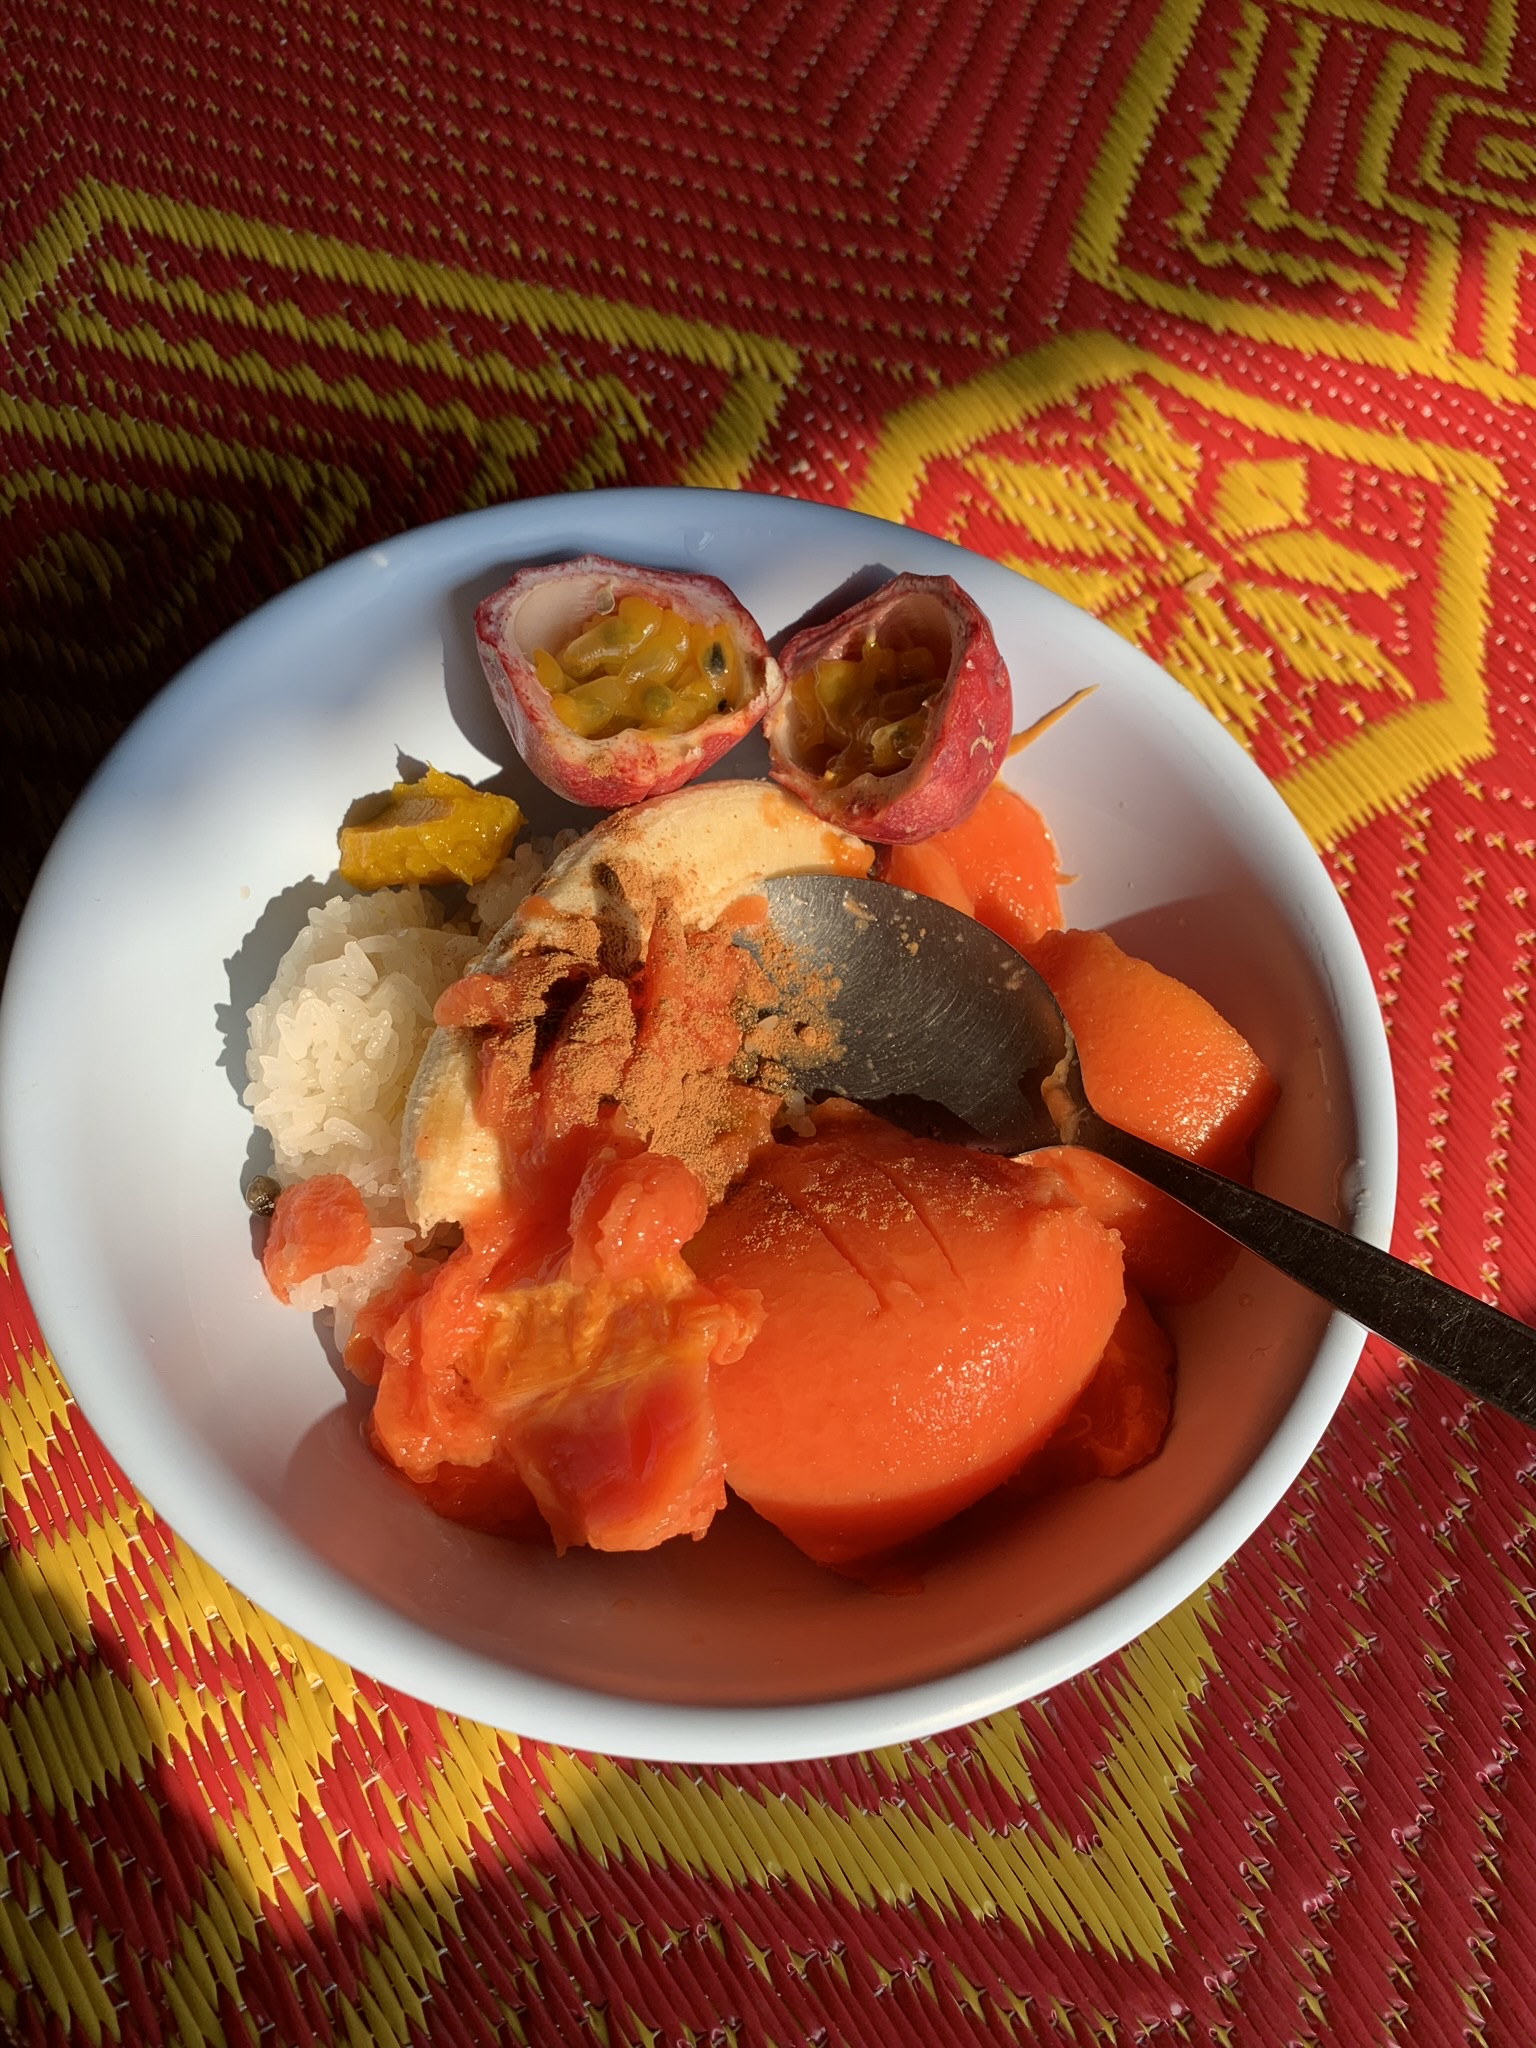 A typical breakfast in the Lahu village - sticky rice topped with fresh papaya, bananas, passion fruit, cinnamon and local honey. Apparently the papaya seeds are good for digestive health (especially after eating so much sticky rice)! They taste like bitter peppercorns.